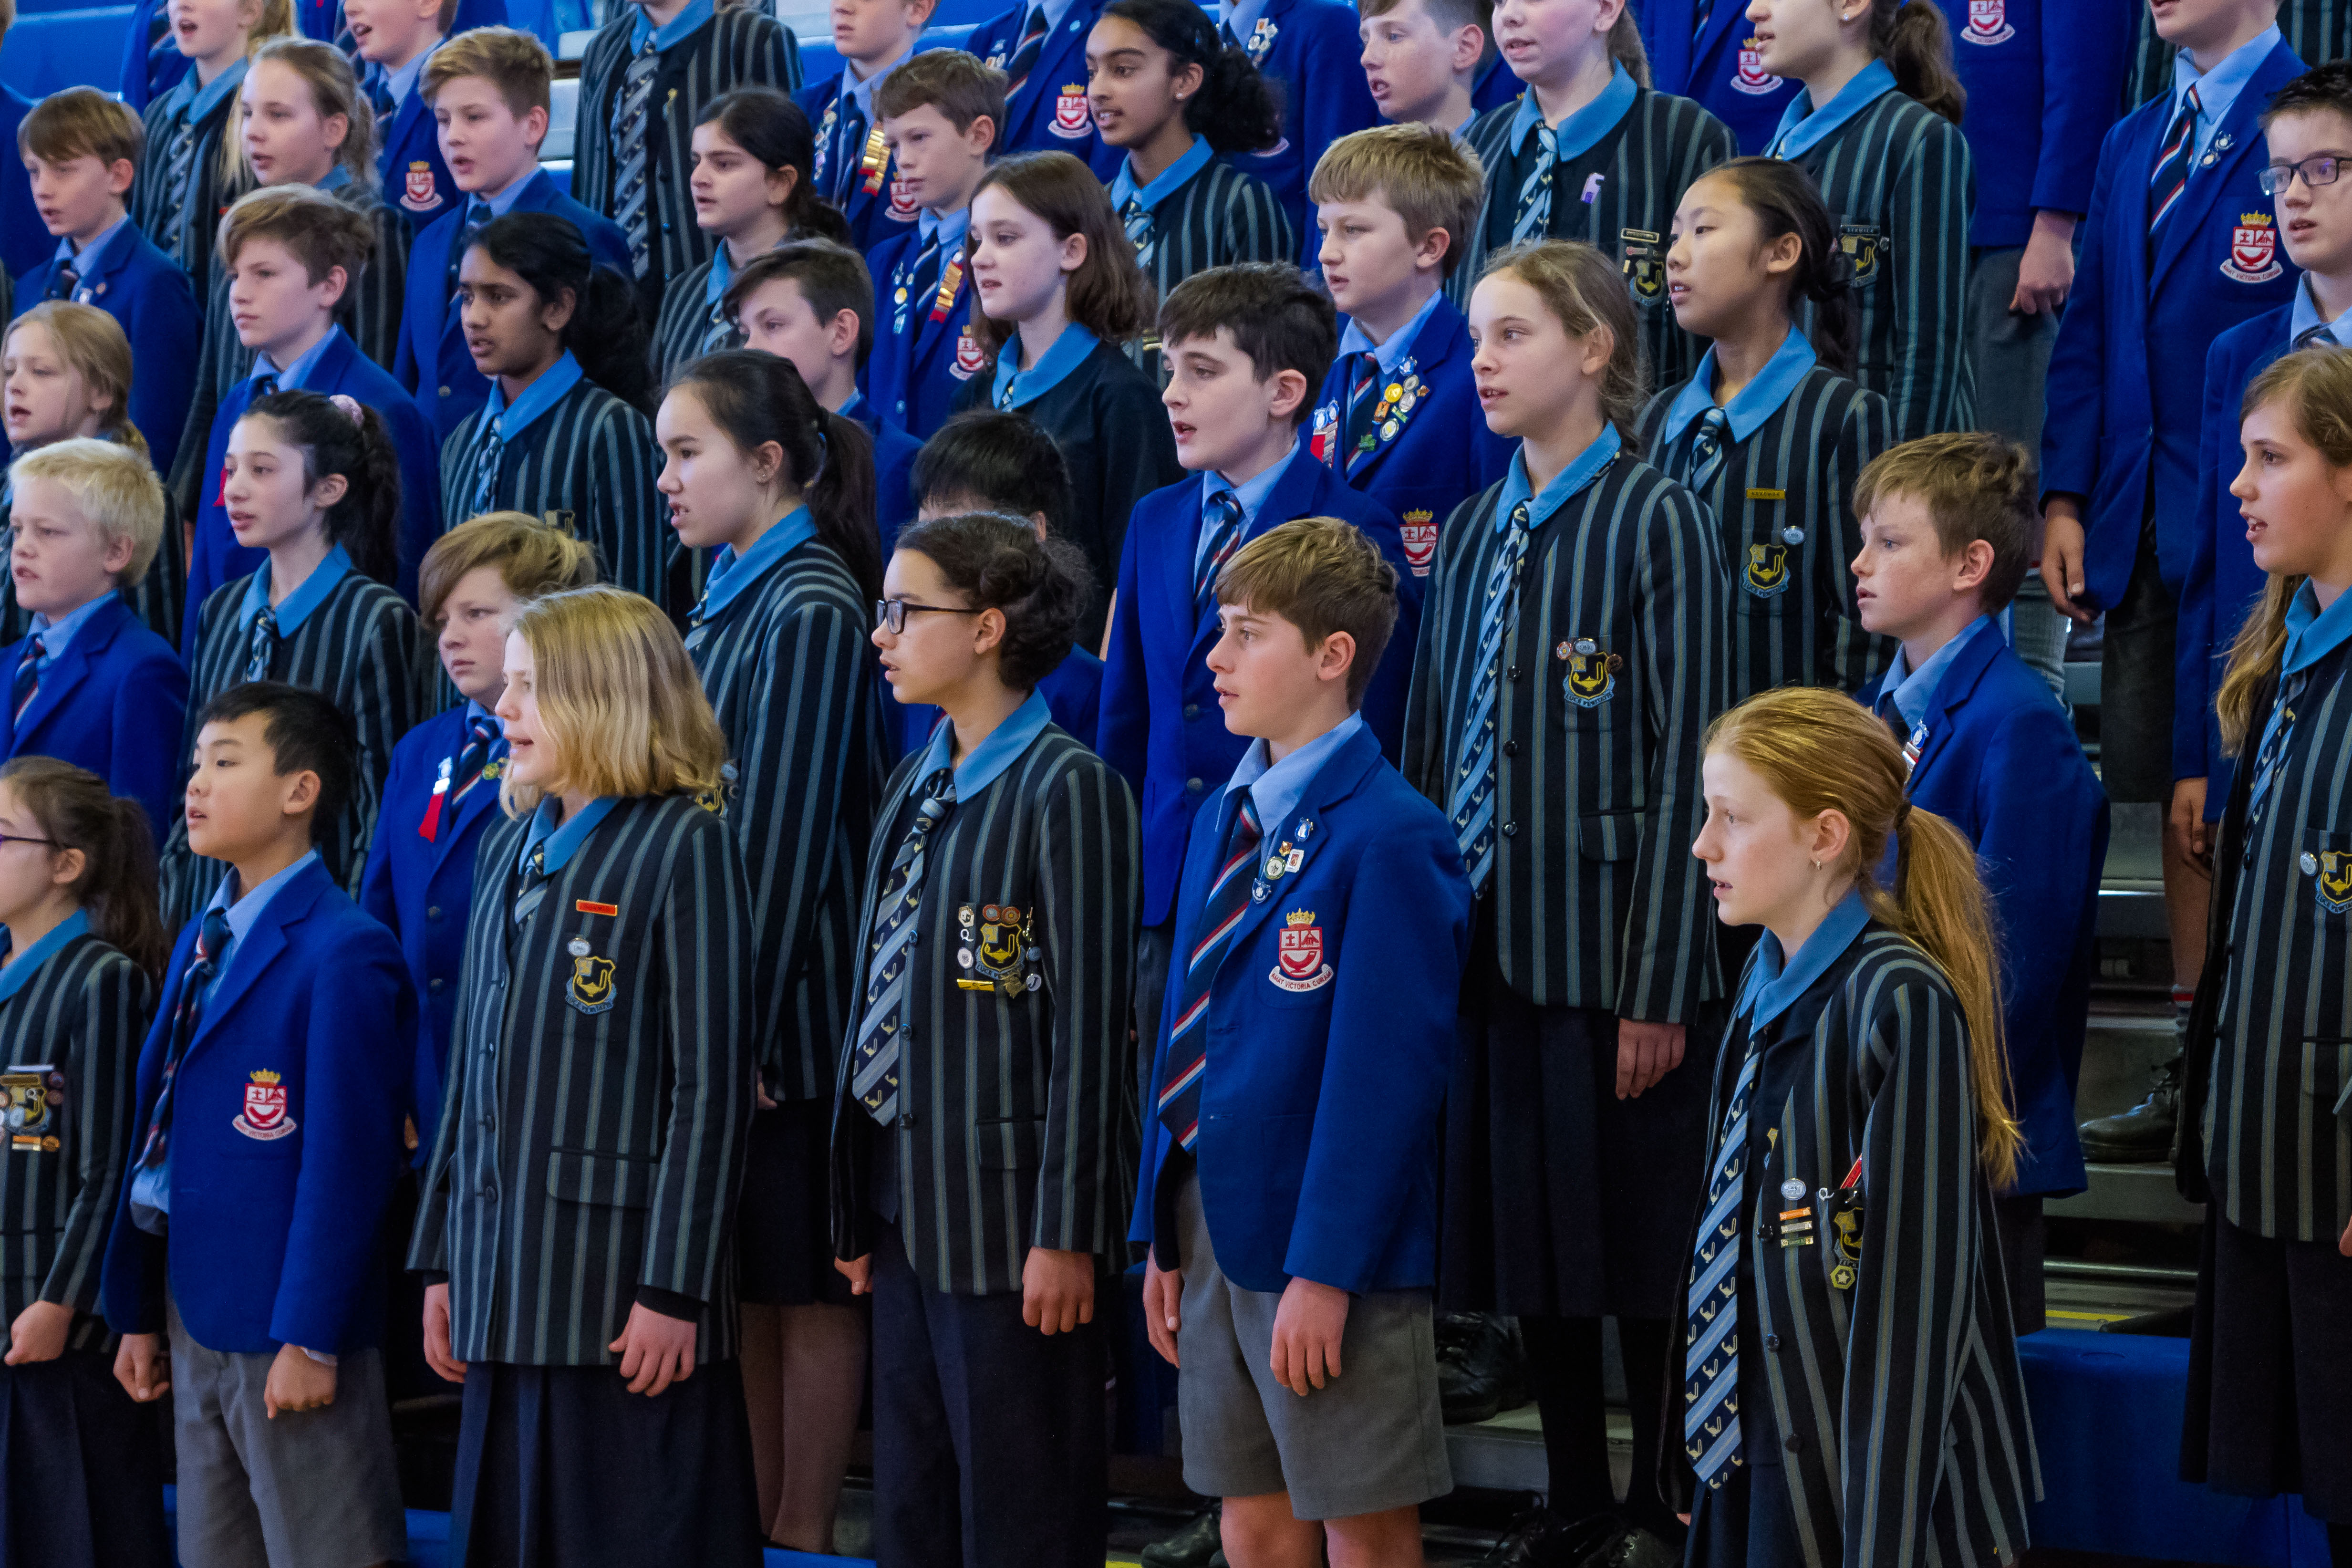 WMT Cultural Correspondent: Wellesley boys enjoy QMC Choir Exchange